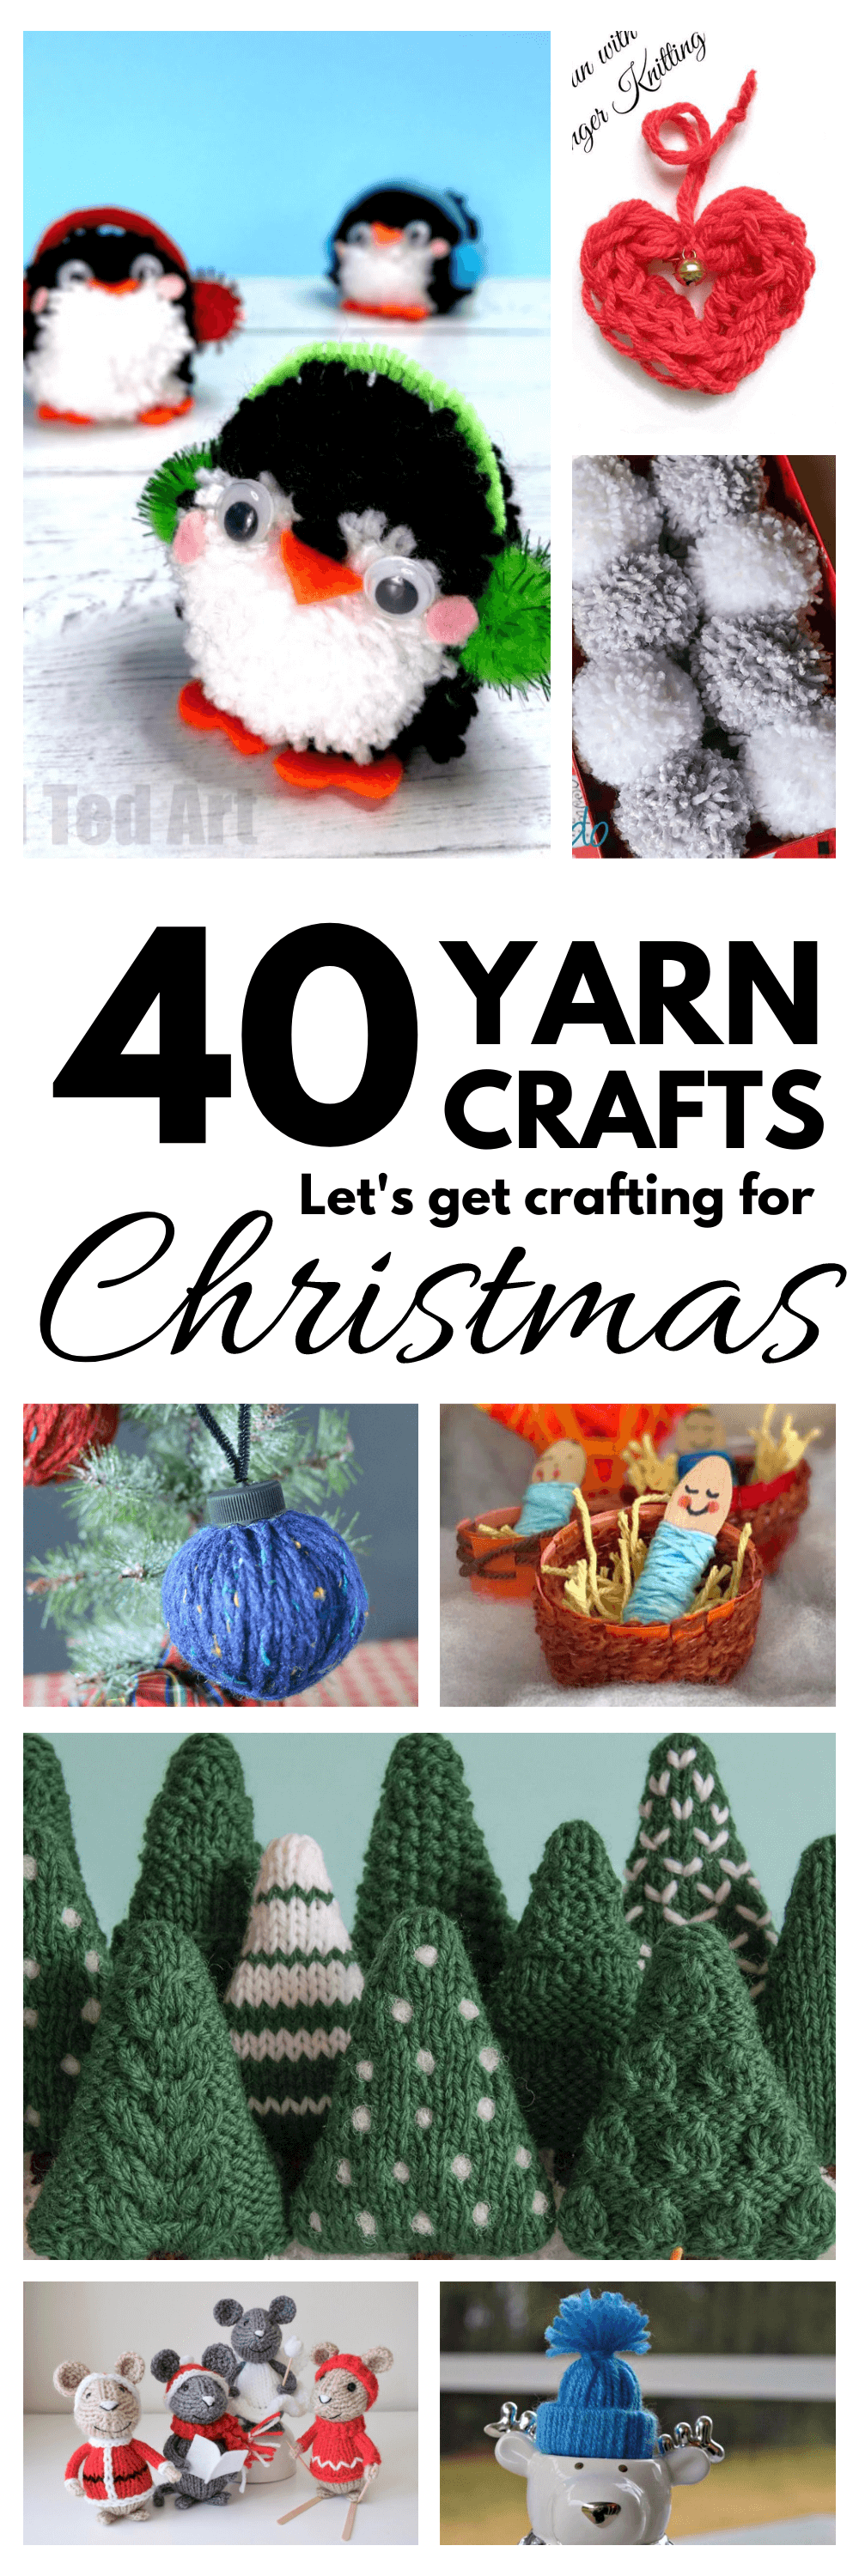 Christmas Yarn Crafts – 40 crafts to make!